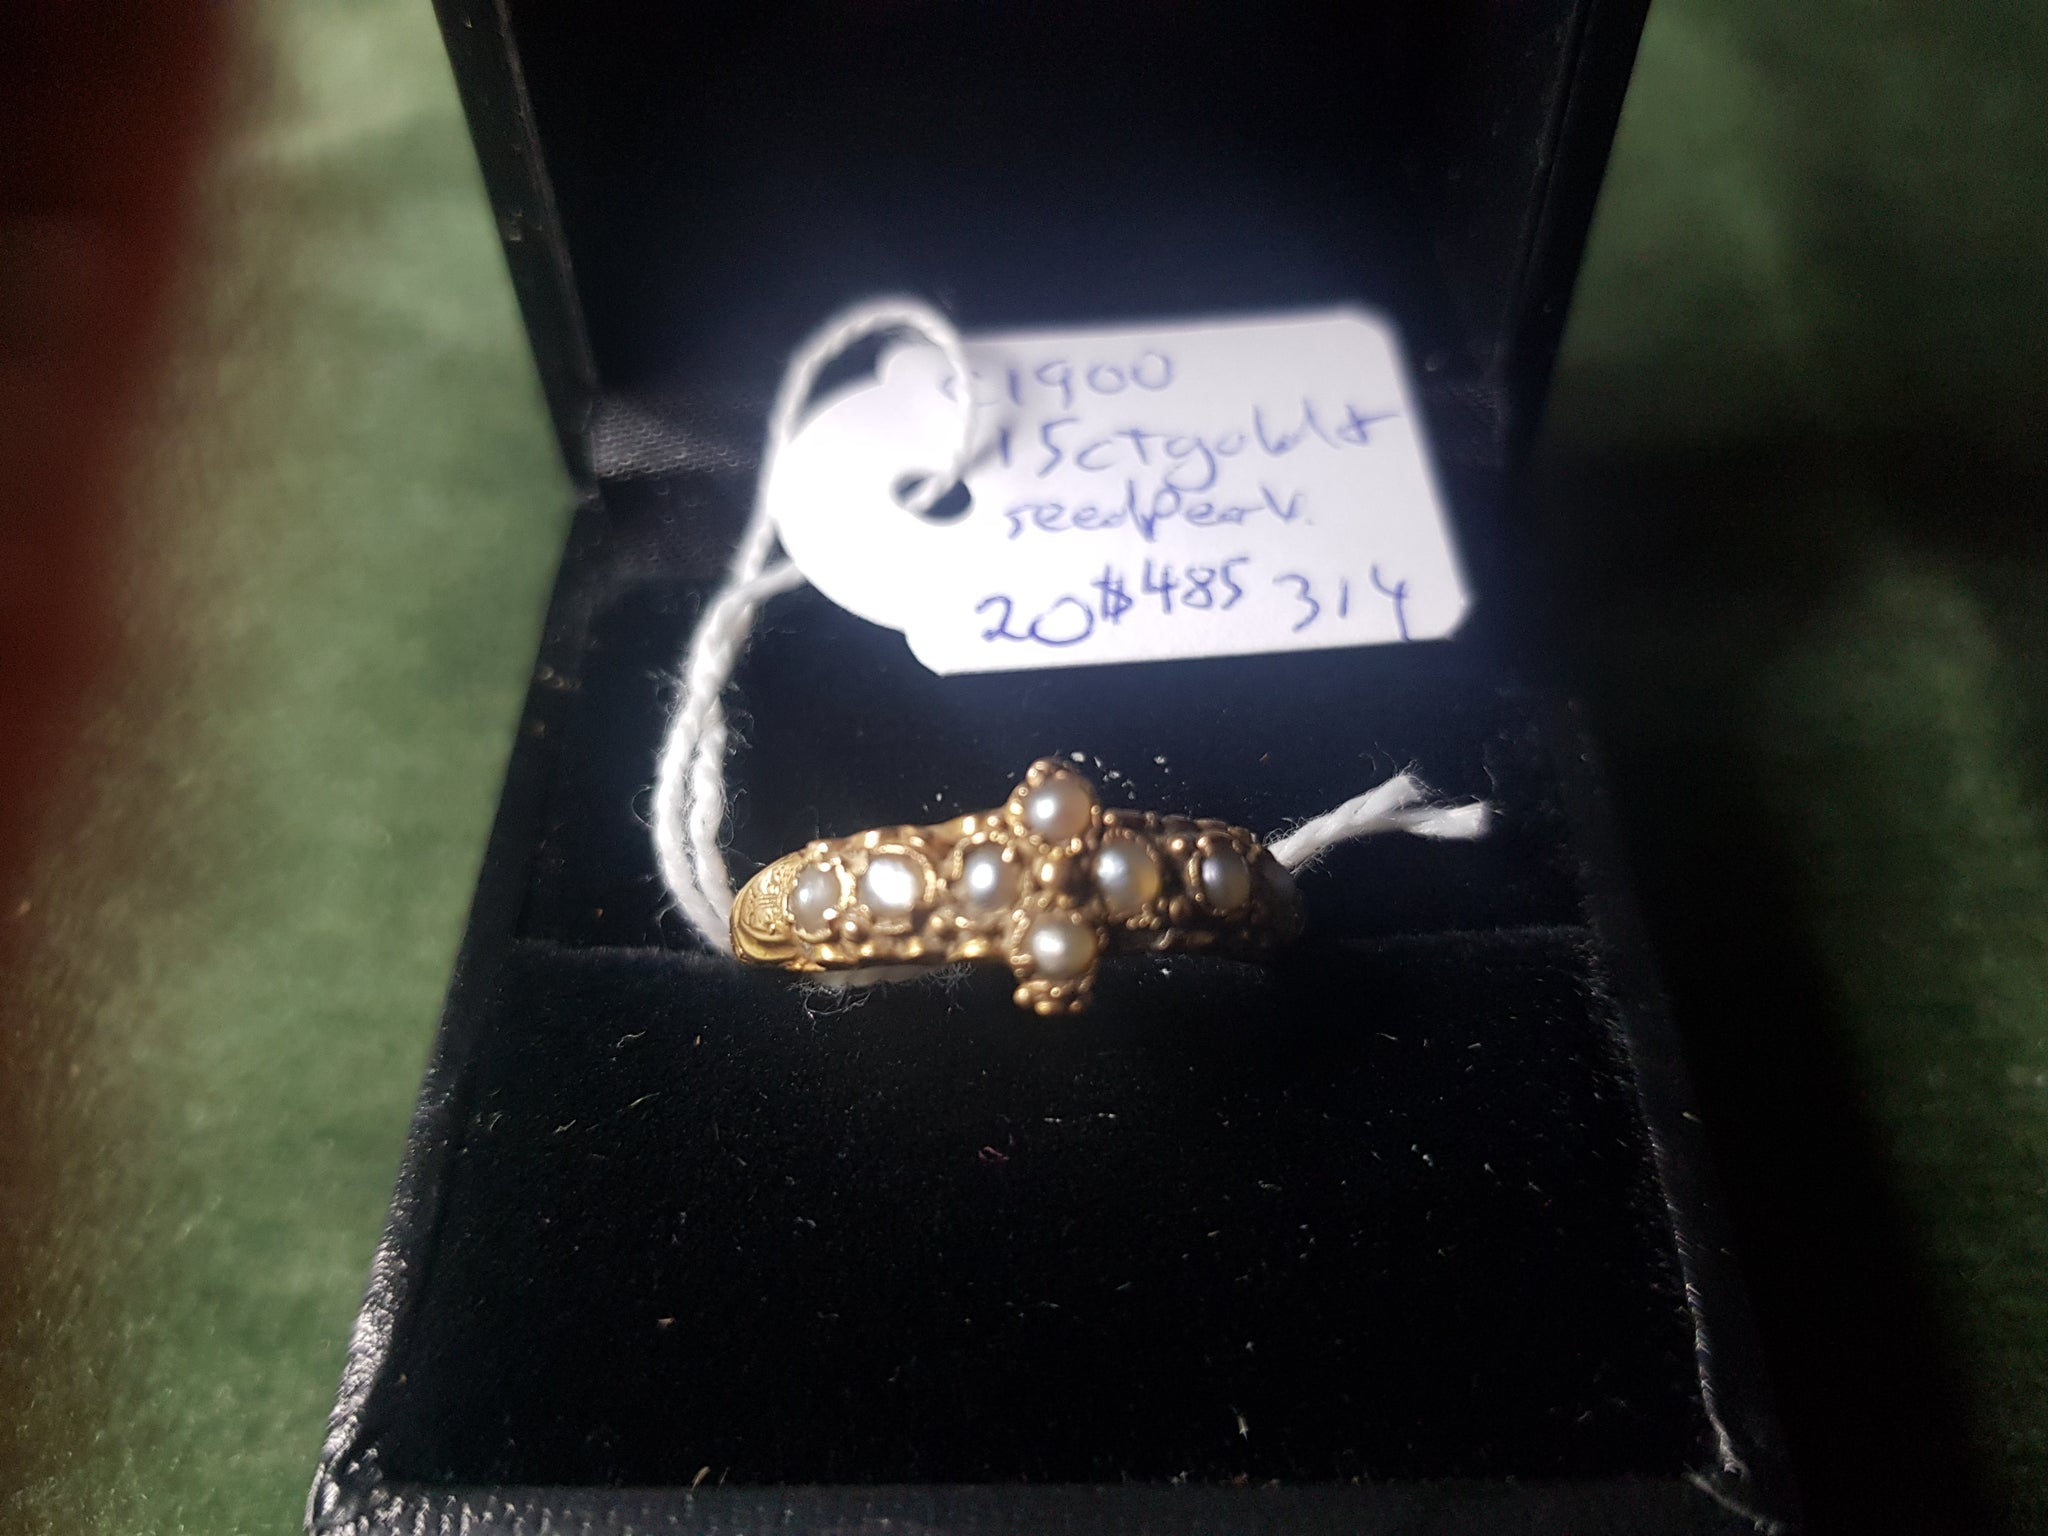 c1900 15ct Gold and Seed Pearls ring #314